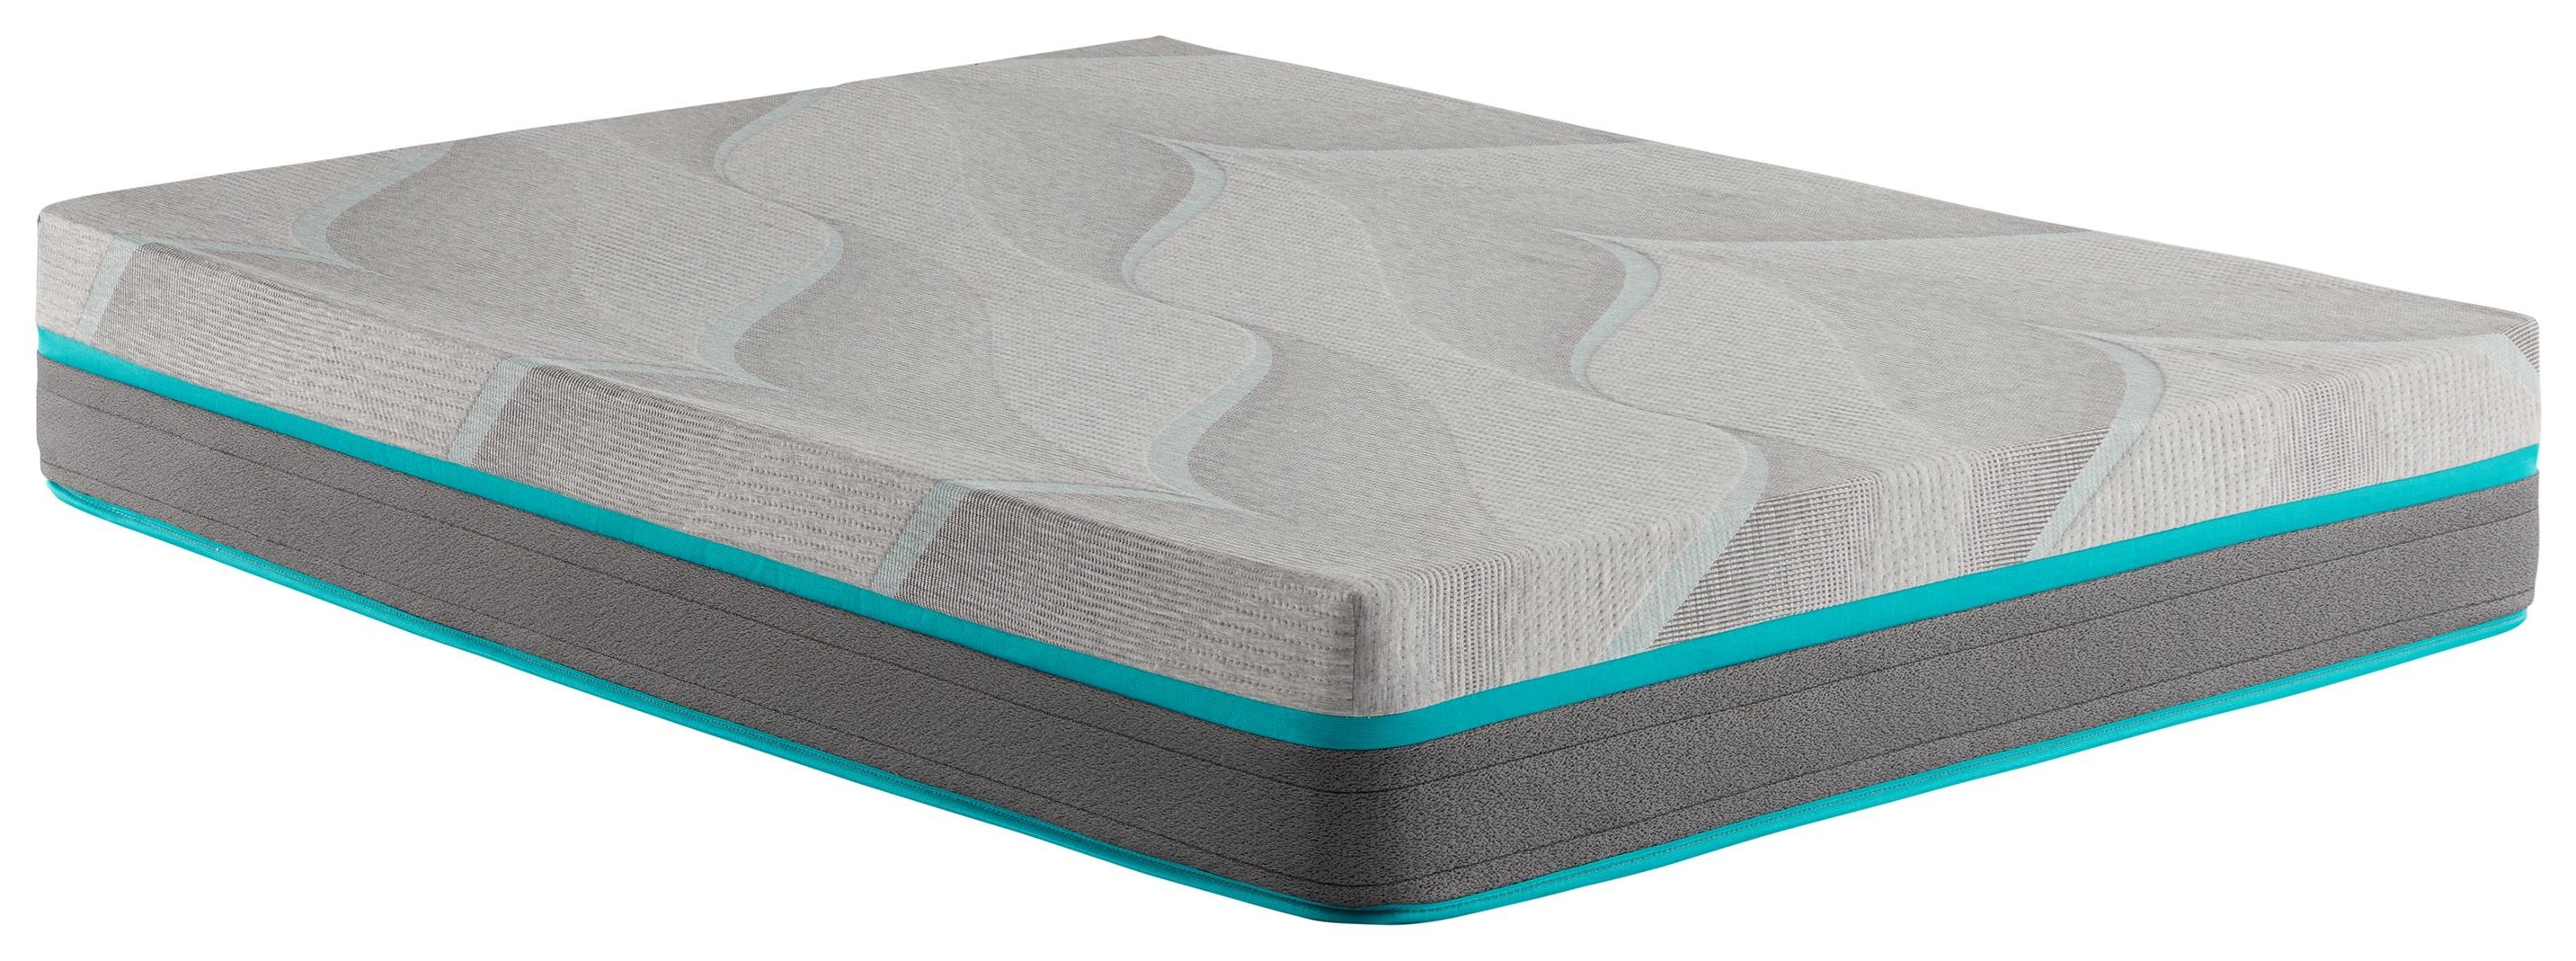 """William Land Park 10"""" Cal King Hybrid Cushion Firm Mattress by Corsicana at Beck's Furniture"""